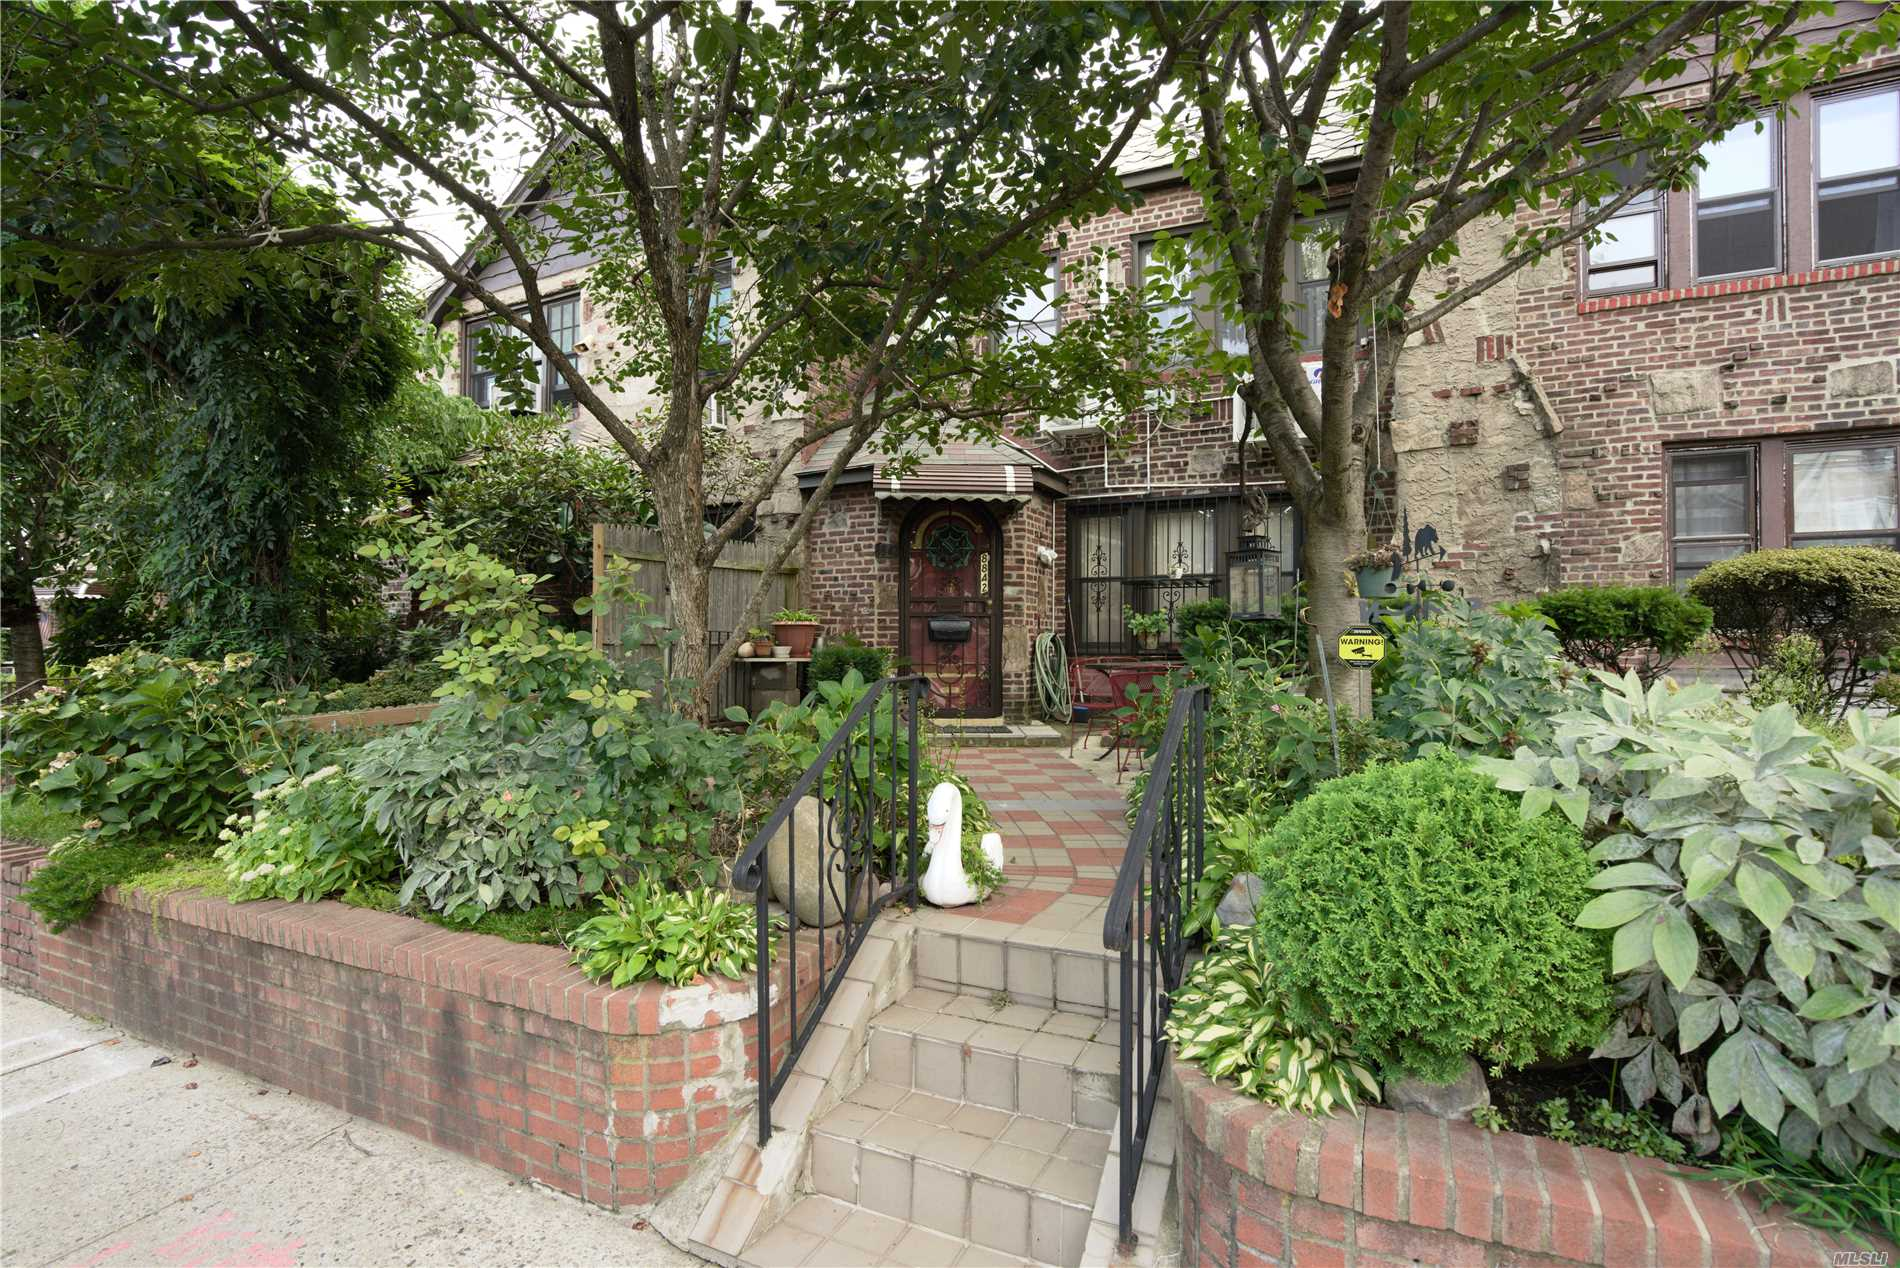 Beautiful Brick Tudor Townhouse. Excellent Condition With Updated Kitchen And Bathrooms. Hardwood Floor Throughout. Ductless Split A/C. Finished Basement. 4 Bedrooms, 3 Full Baths, Det. Garage. Very Good School District. Minutes Away From The R, M Train Station And Shopping Center.